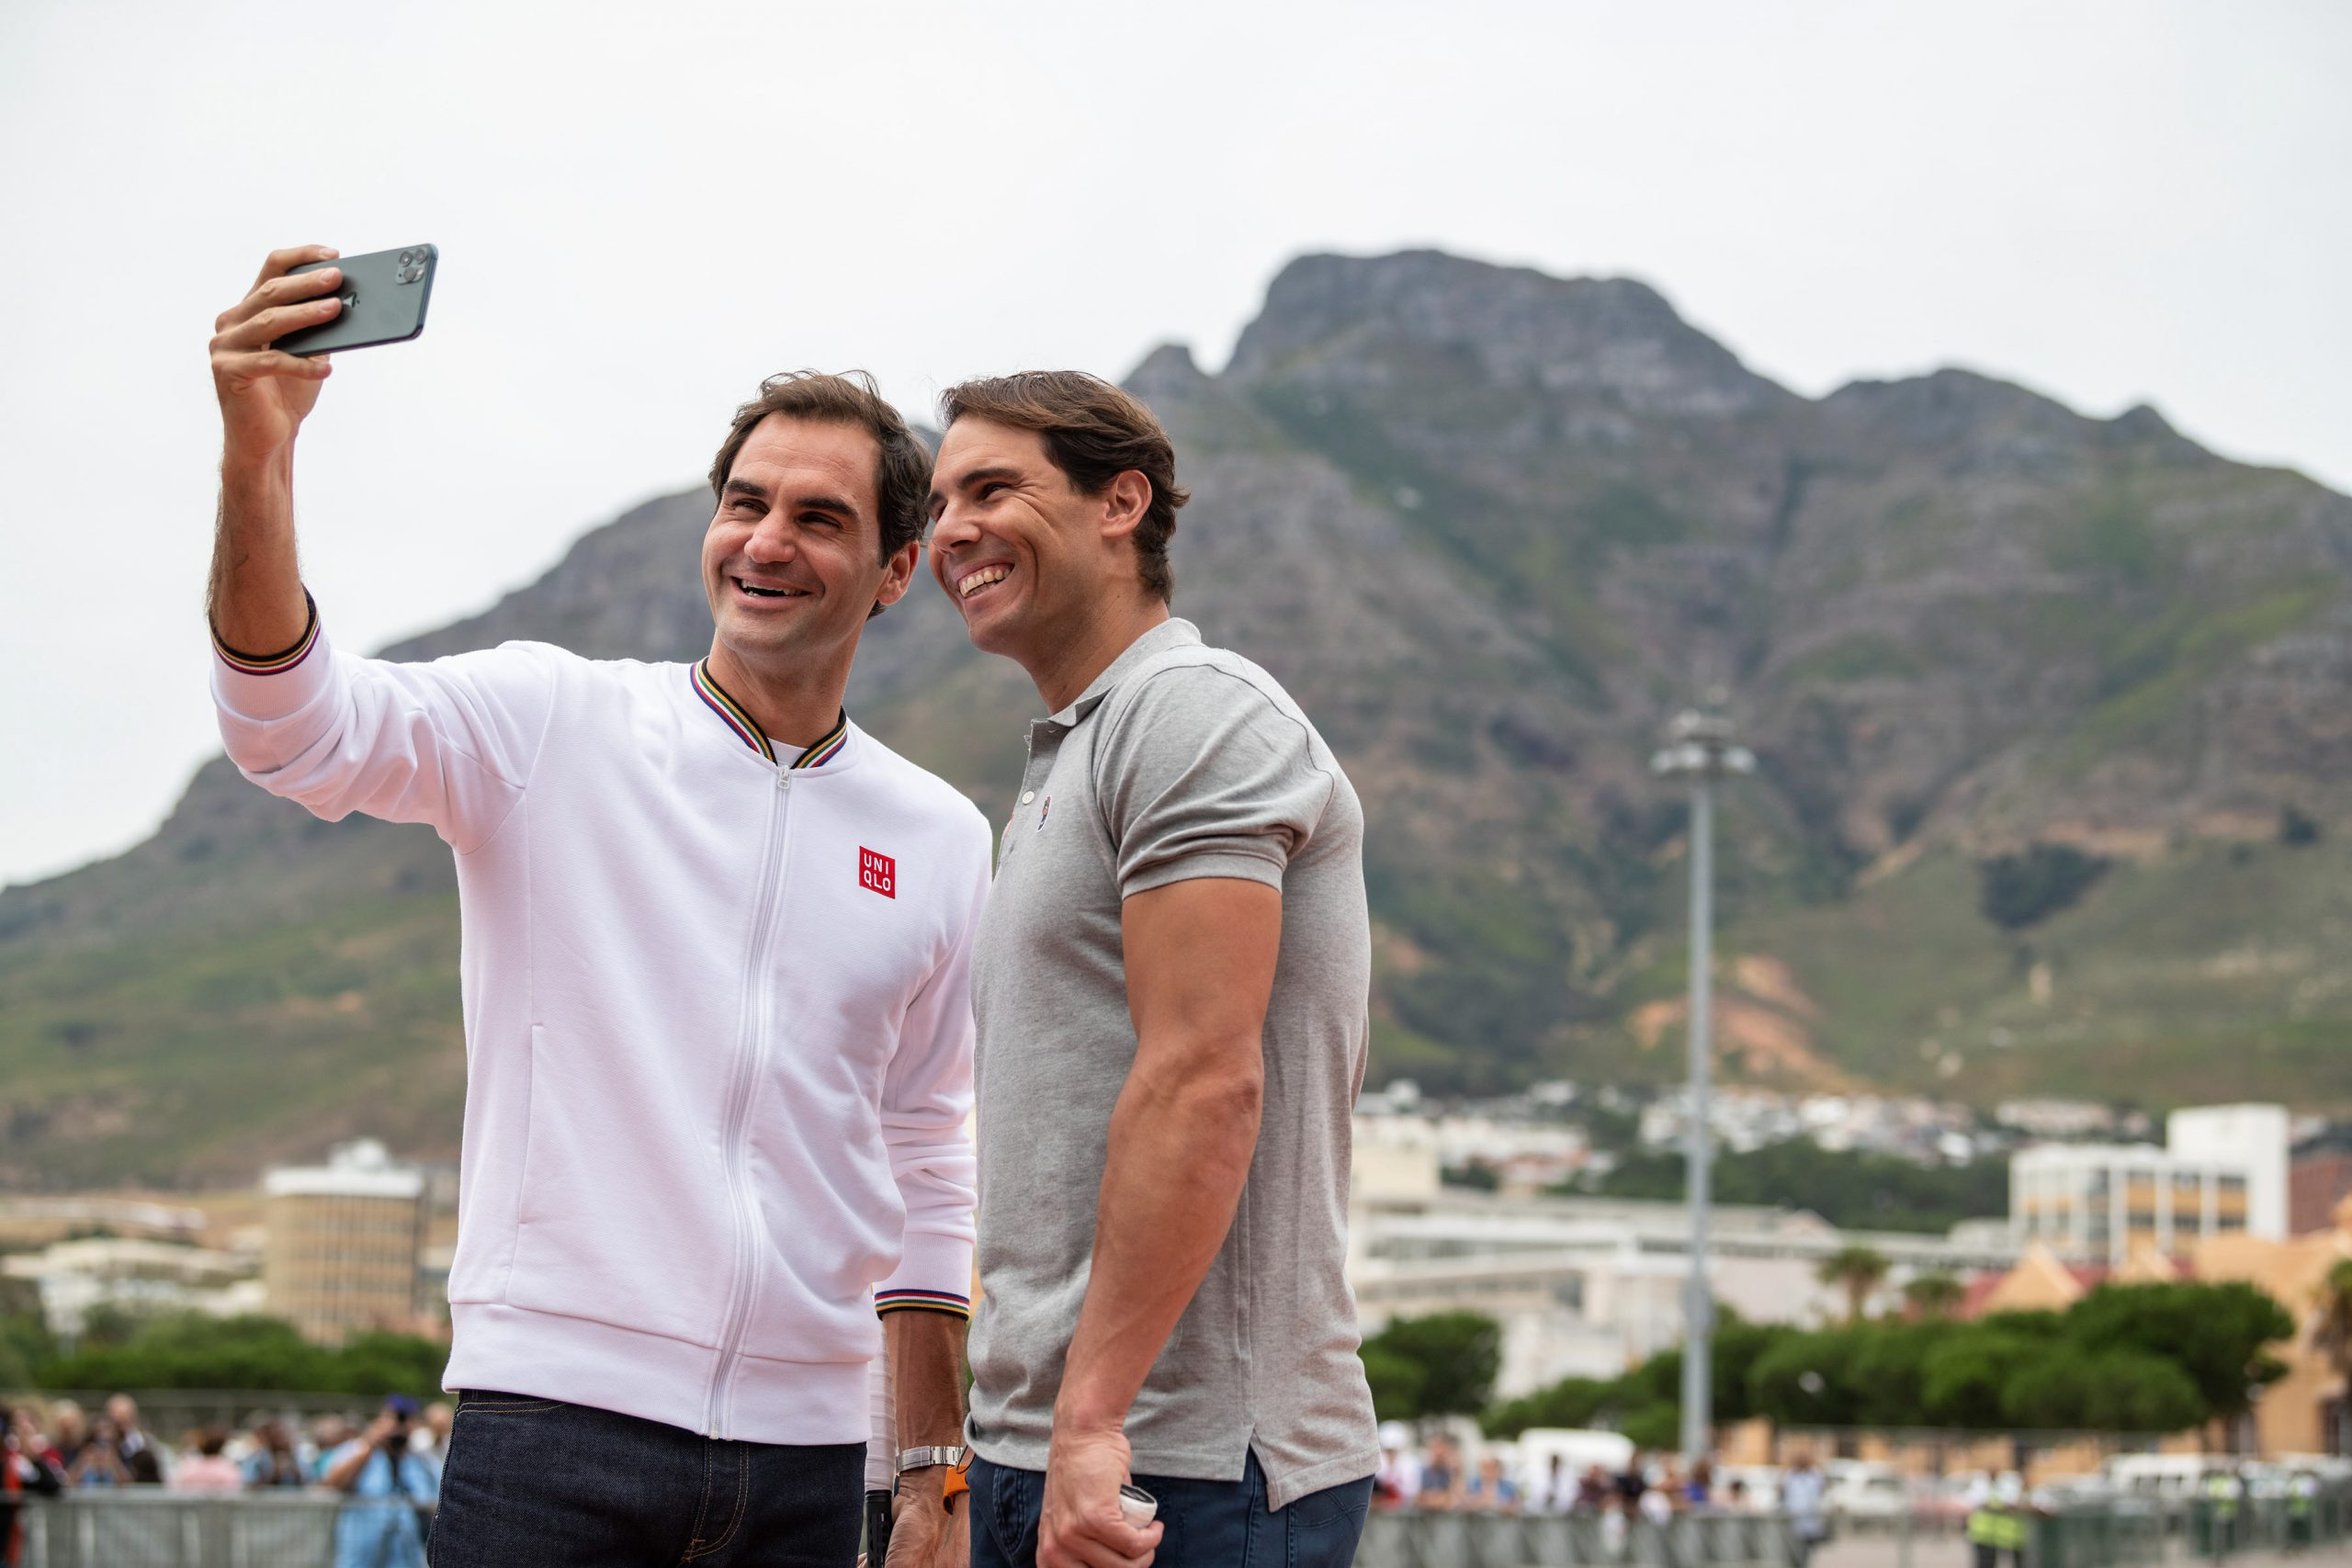 7 February 2020: Competitors Roger Federer and Rafael Nadal enjoy some pre-match fun.